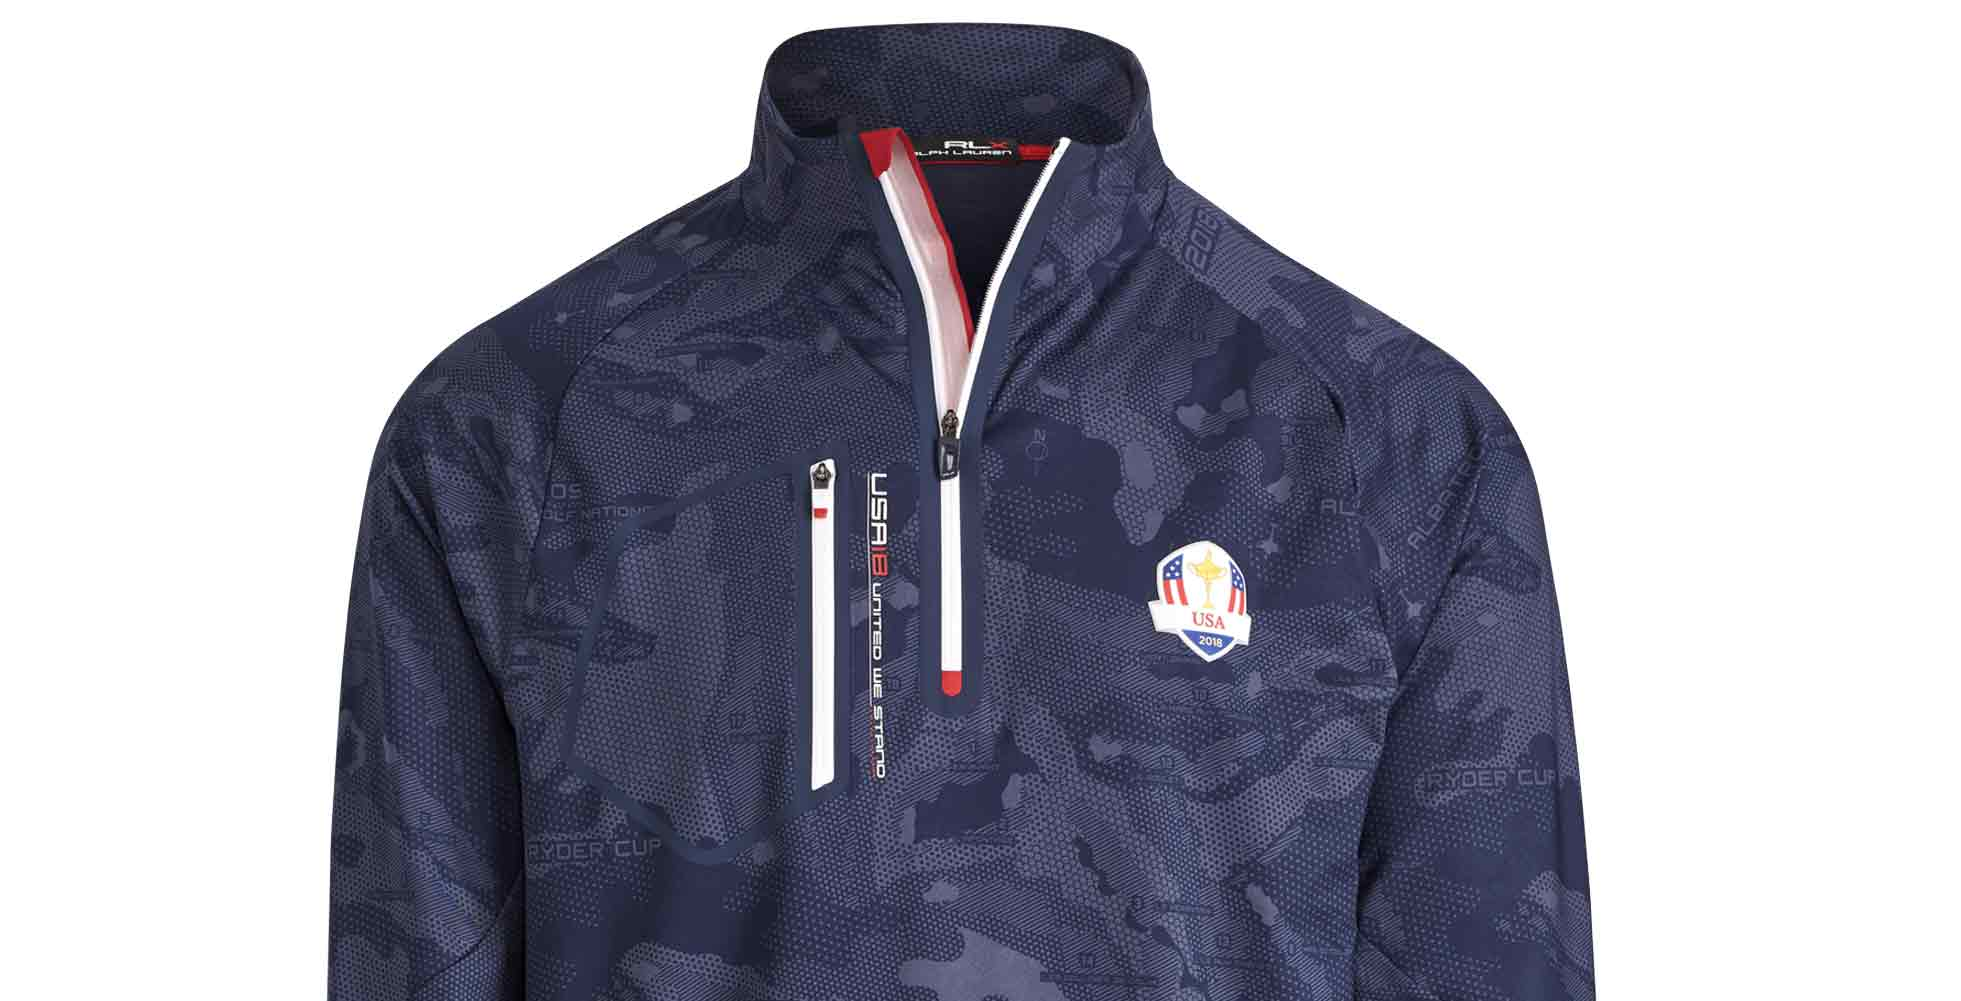 2020 Usa Ryder Cup Apparel.We Got A First Look At The 2018 American Ryder Cup Uniforms